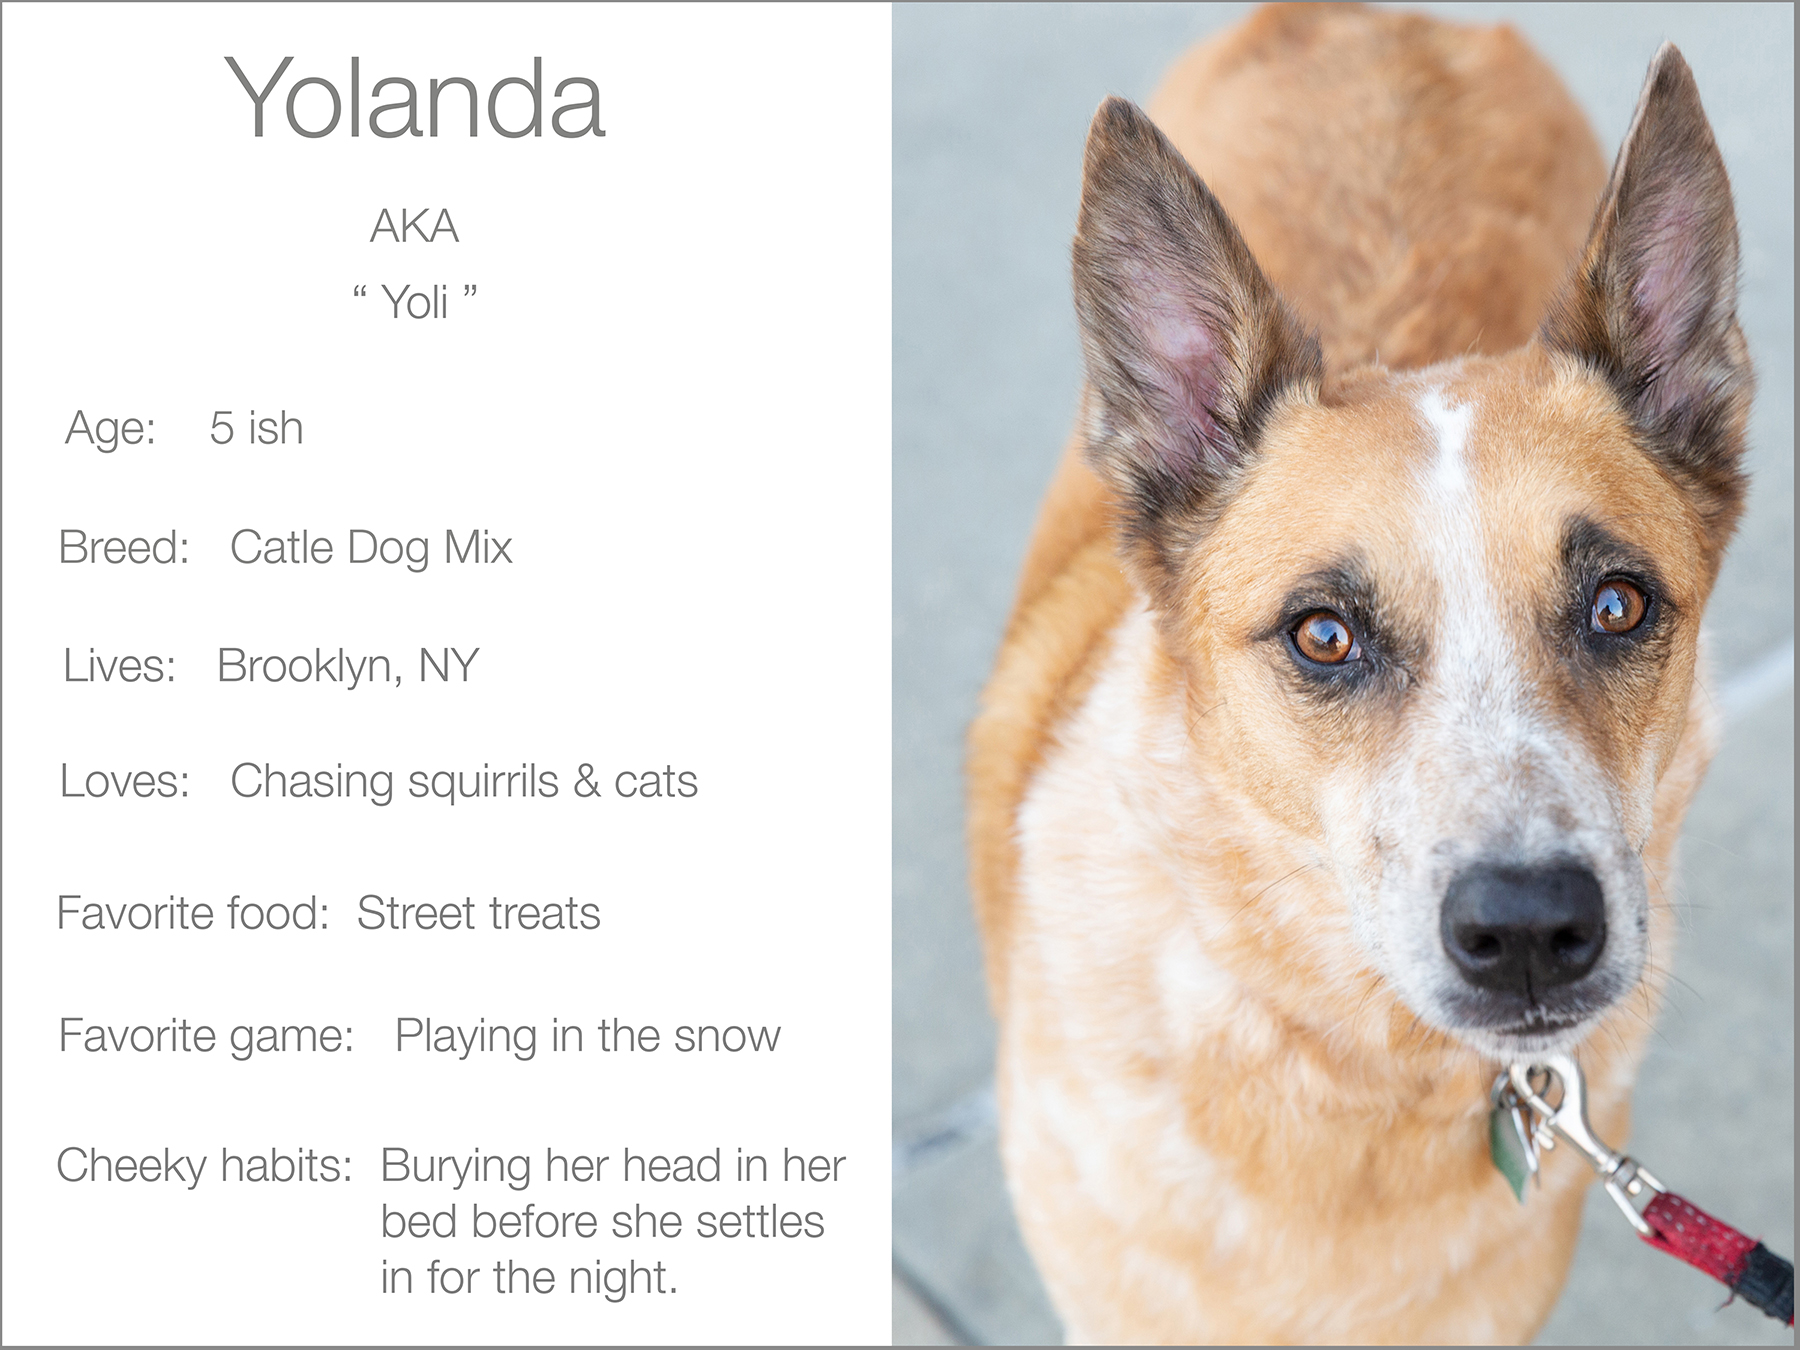 Yolanda profile dogs_and_the_city kristie_lee_photographer Charlie.jpg 2